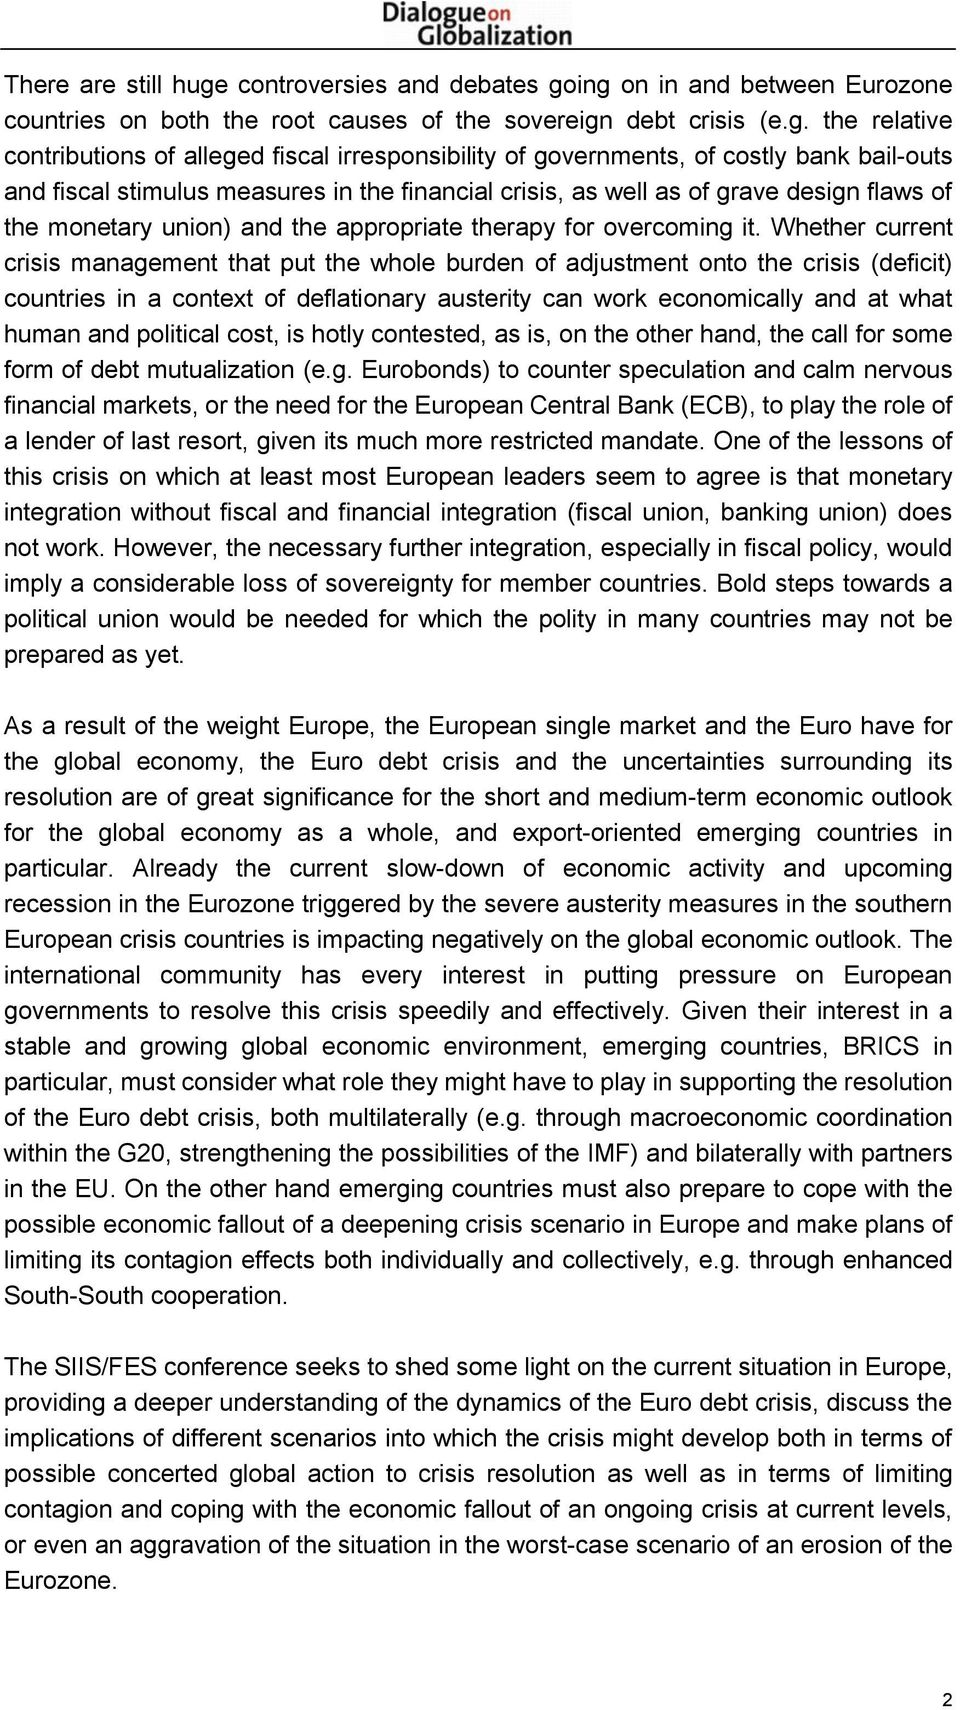 ing on in and between Eurozone countries on both the root causes of the sovereign debt crisis (e.g. the relative contributions of alleged fiscal irresponsibility of governments, of costly bank